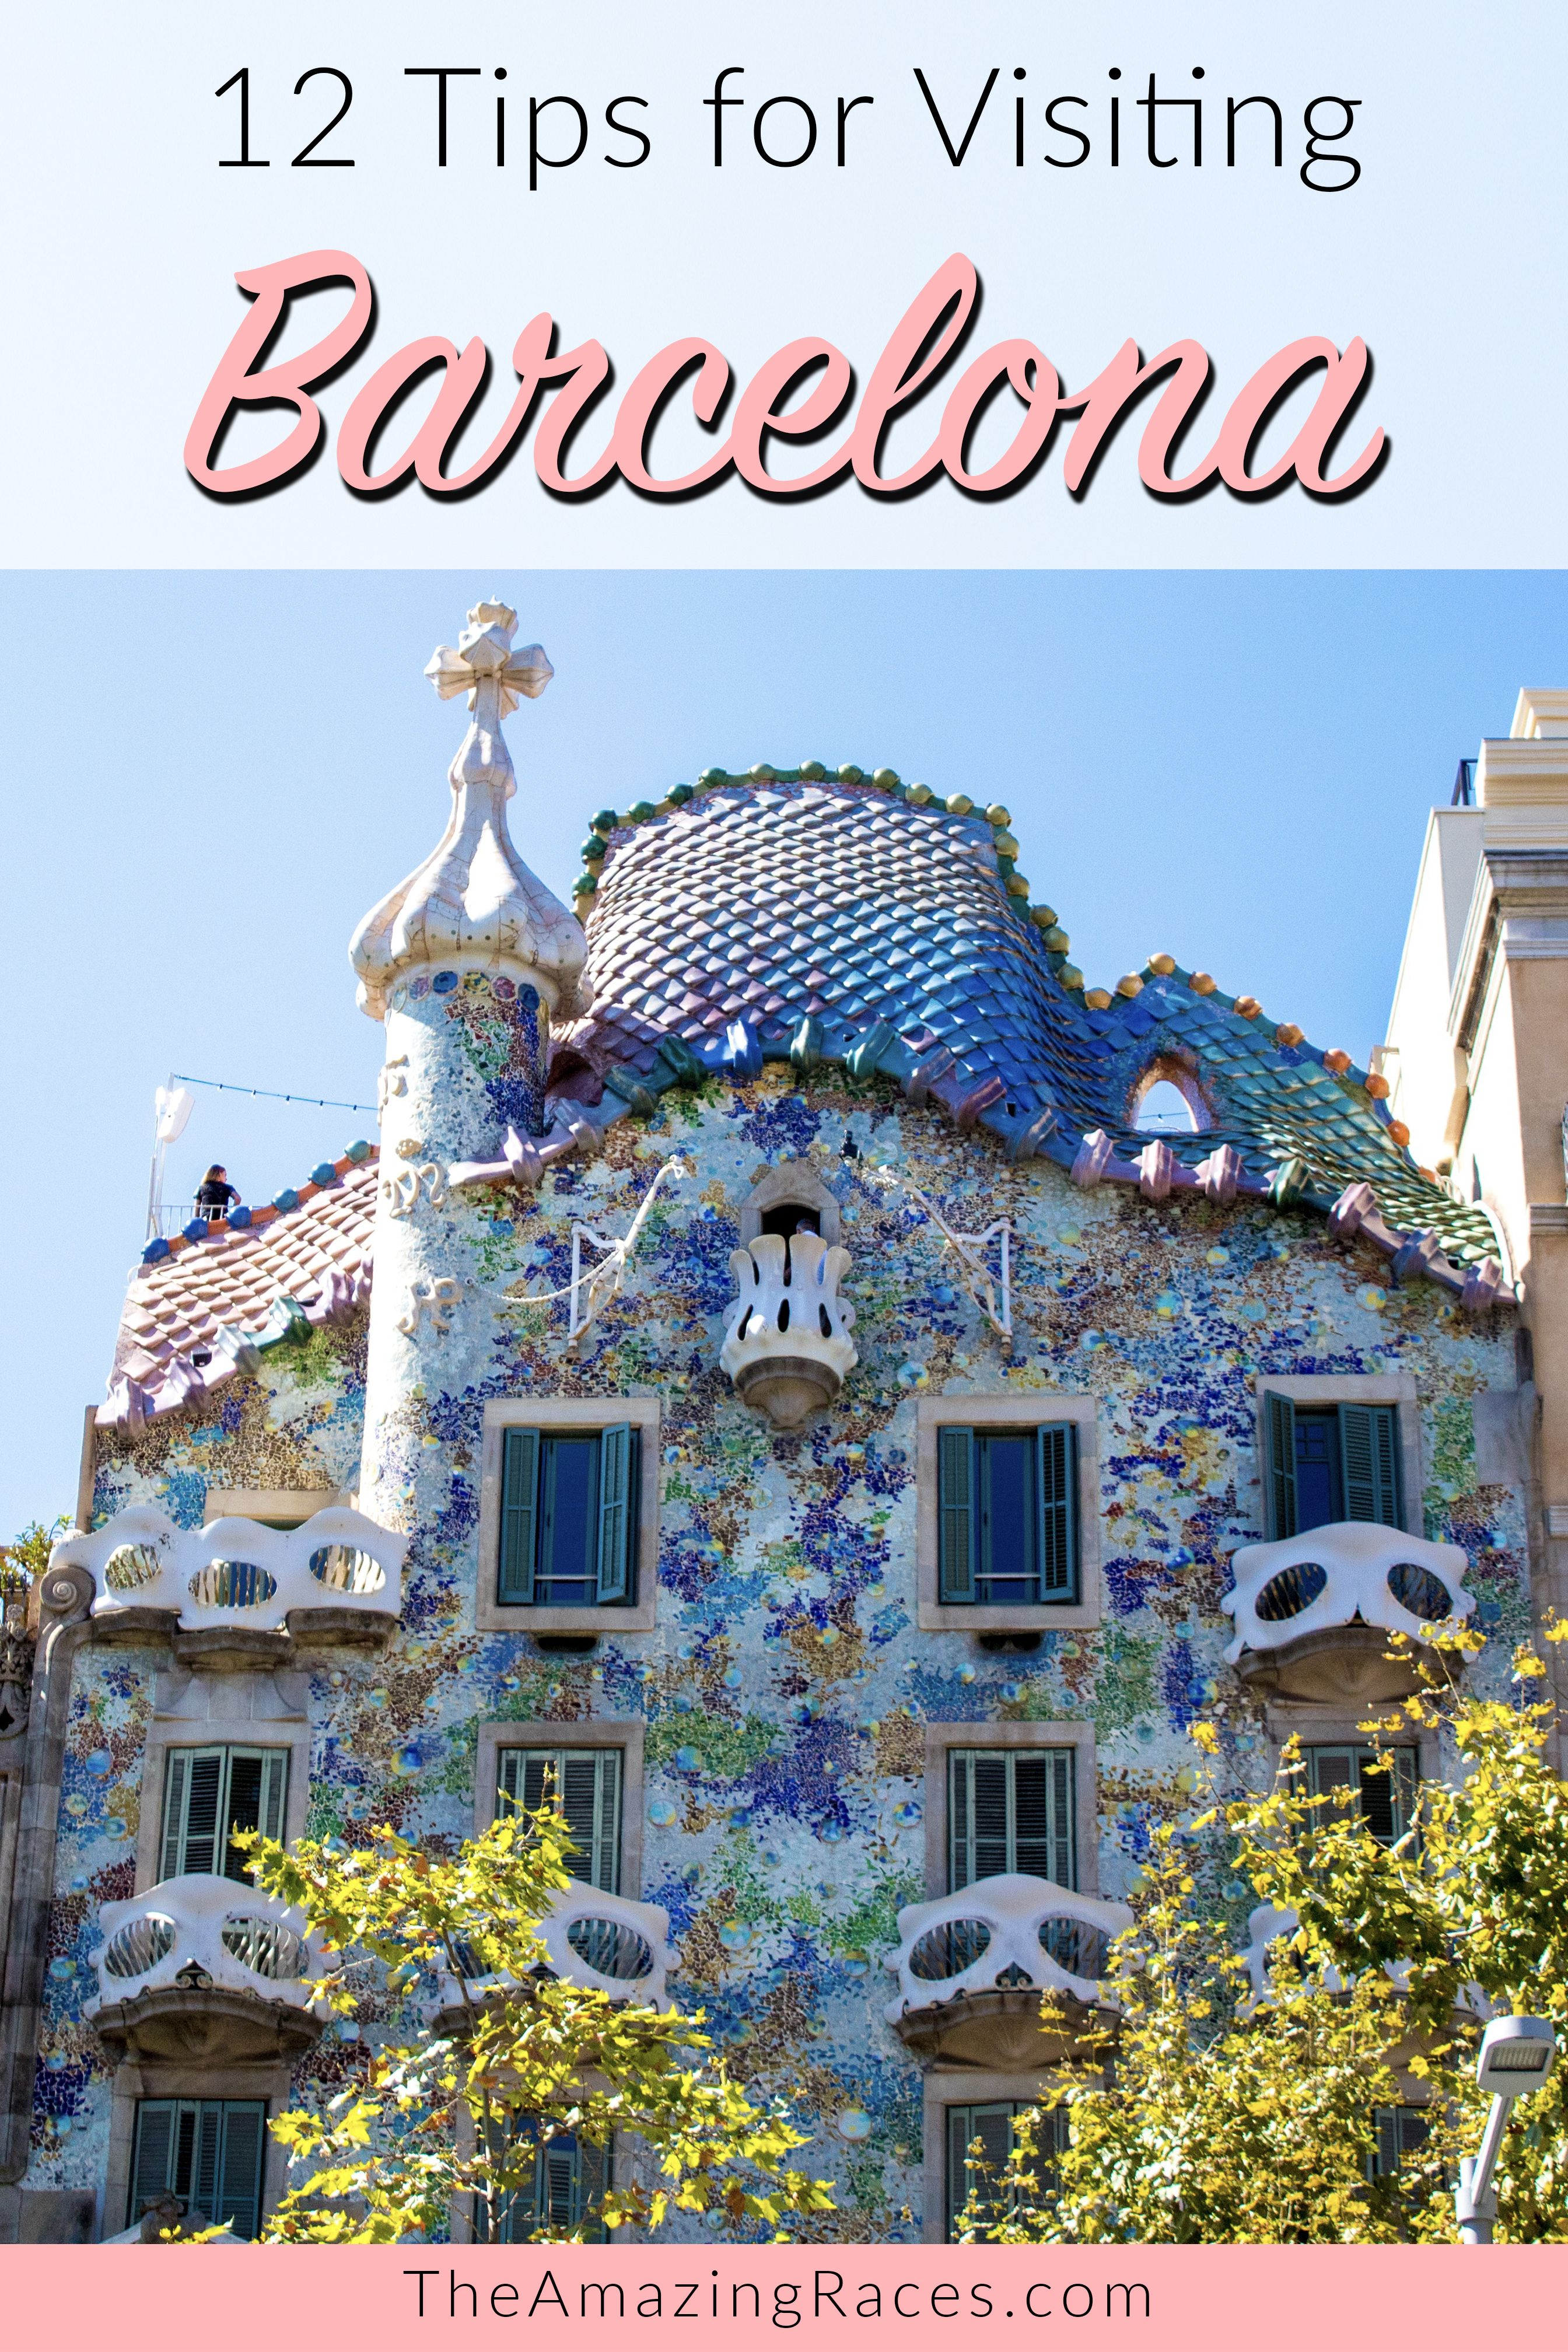 12 travel tips to help you save money in Barcelona and make your trip more enjoyable. Are you visiting Barcelona in the future? Save this pin to your travel board! #barcelona #spain #barcelonatips #traveltips